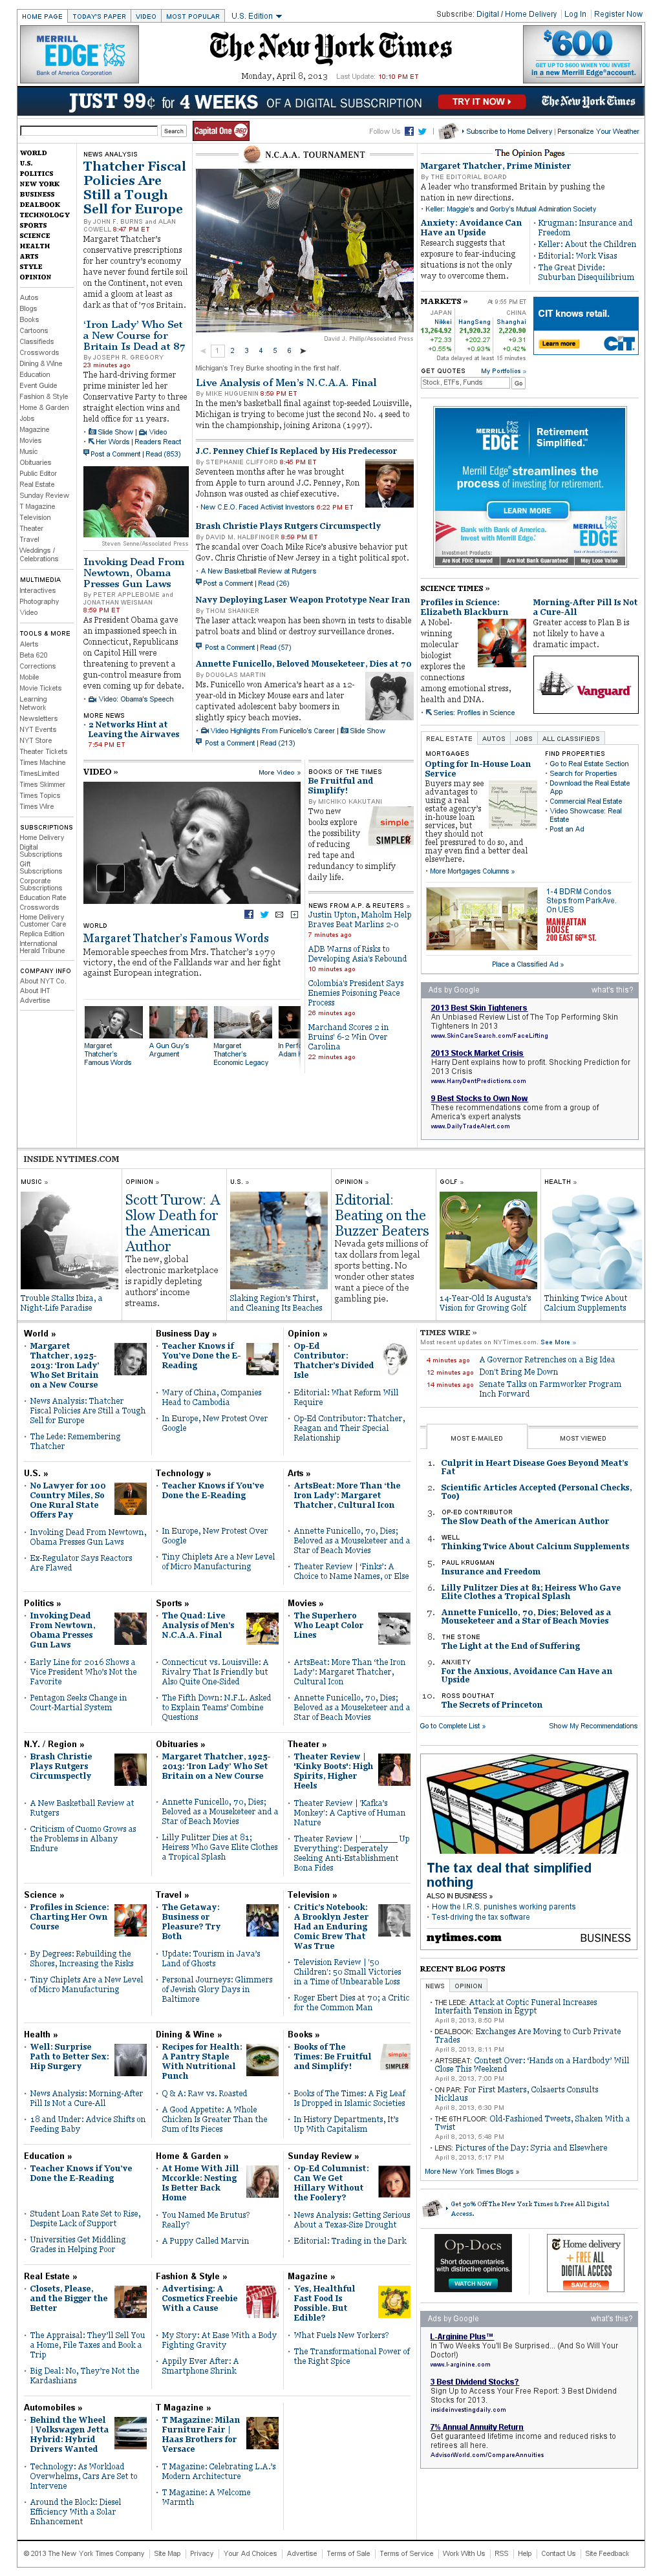 The New York Times at Tuesday April 9, 2013, 2:16 a.m. UTC